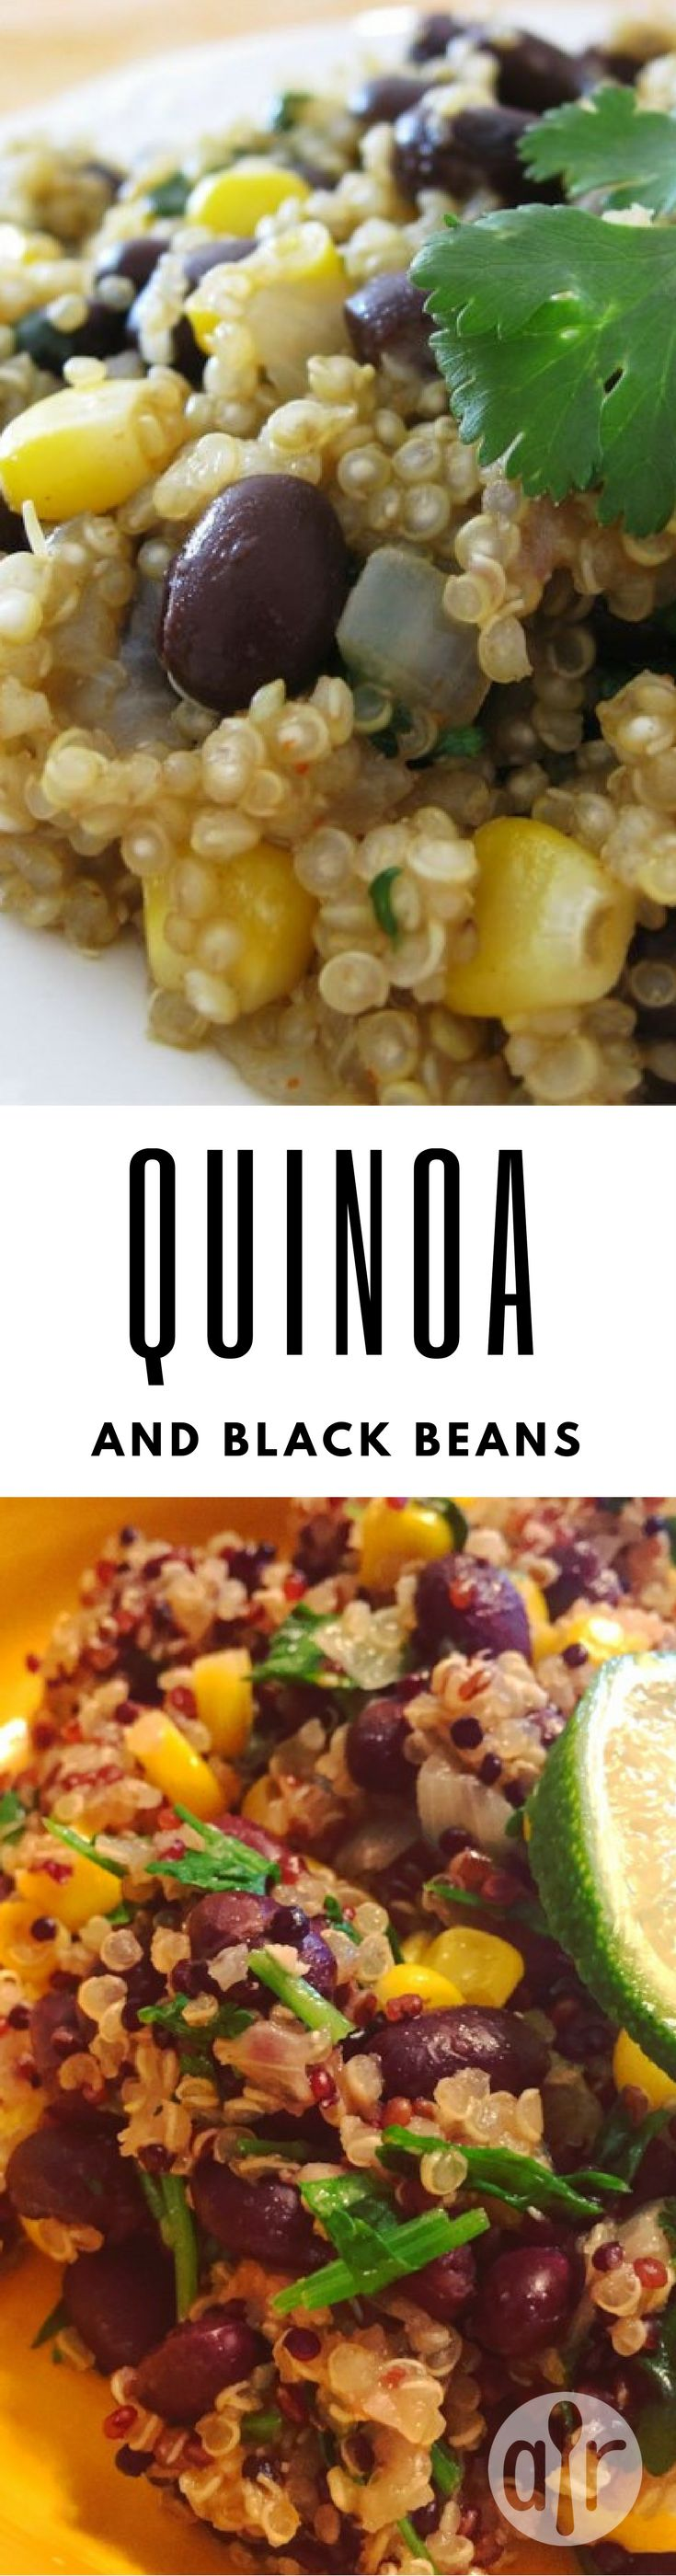 1050 best vegetarian recipes images on pinterest cooking recipes quinoa and black beans forumfinder Image collections